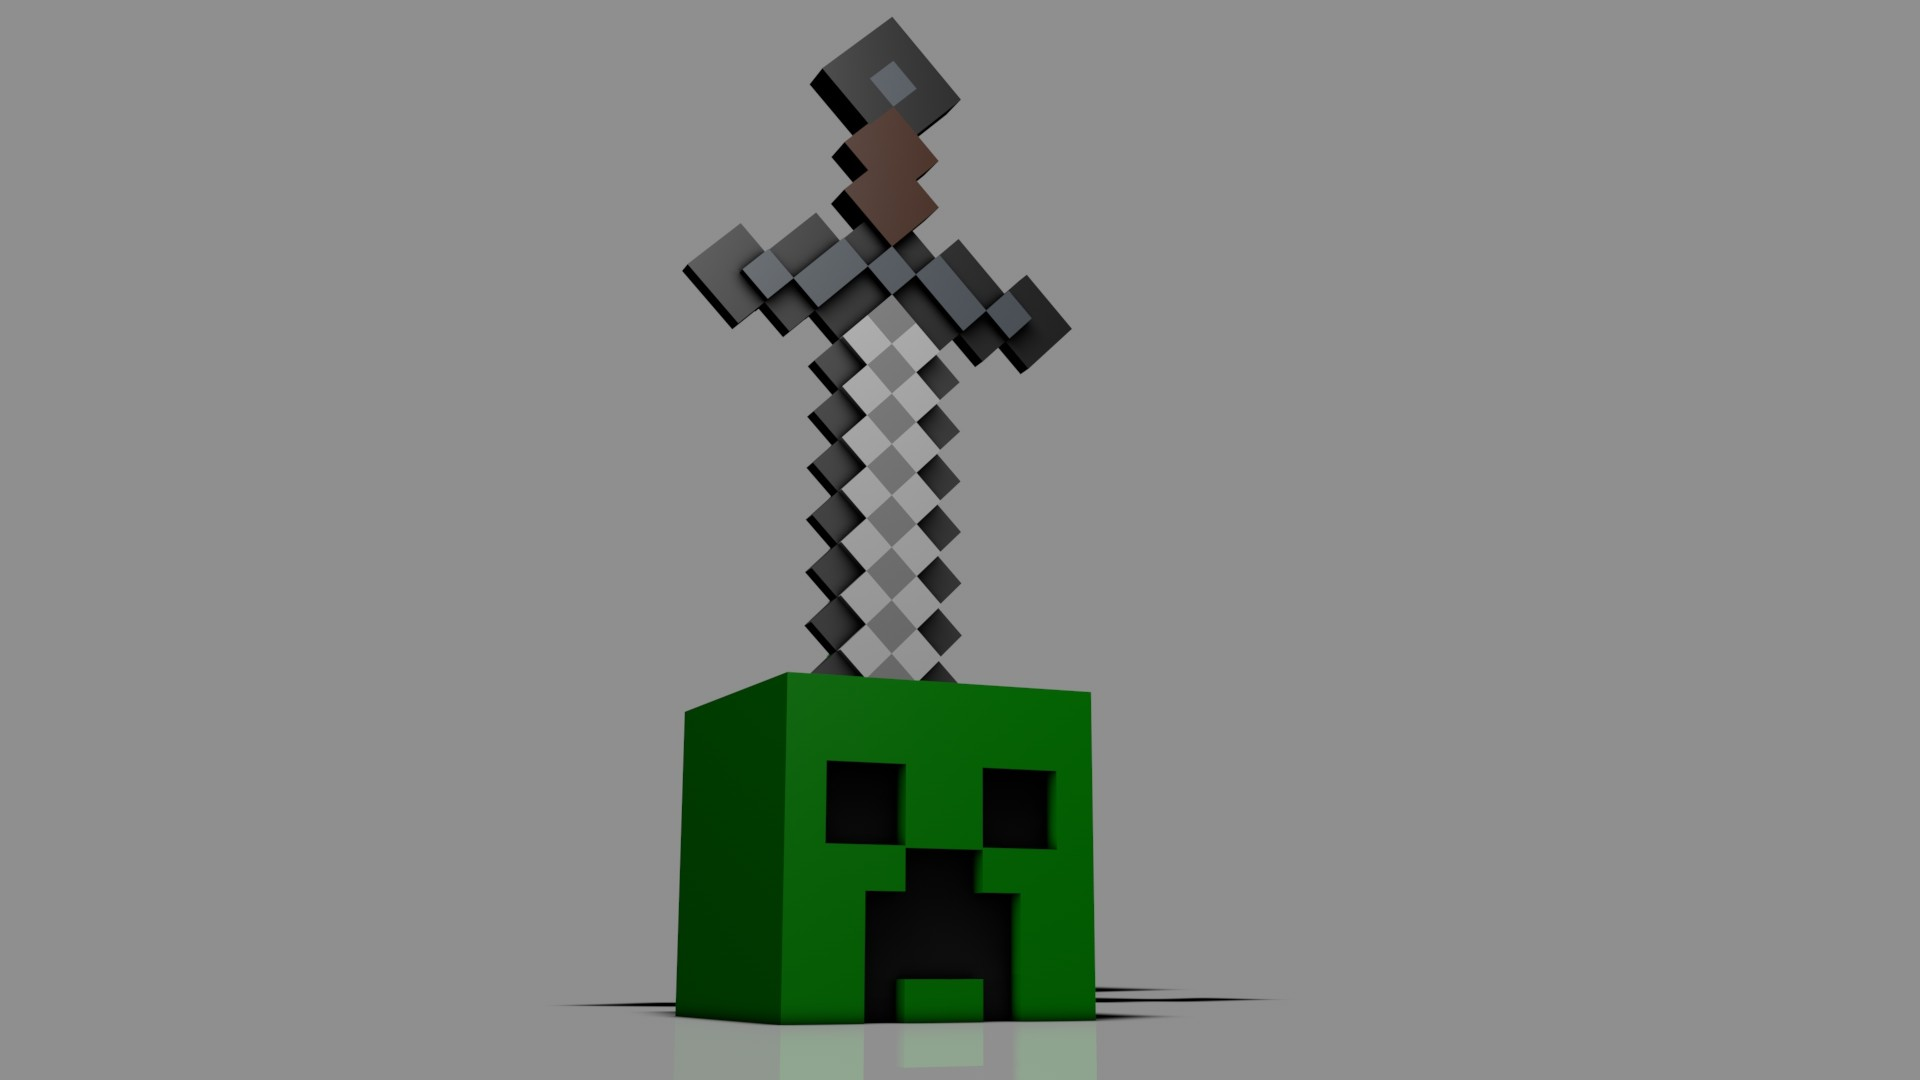 Free Download Creeper Minecraft Wallpaper 1920x1080 Creeper Minecraft Block Exone 1920x1080 For Your Desktop Mobile Tablet Explore 50 Minecraft Wallpapers Creeper Head Minecraft Wallpapers Creeper Windows Wallpaper Minecraft Creeper